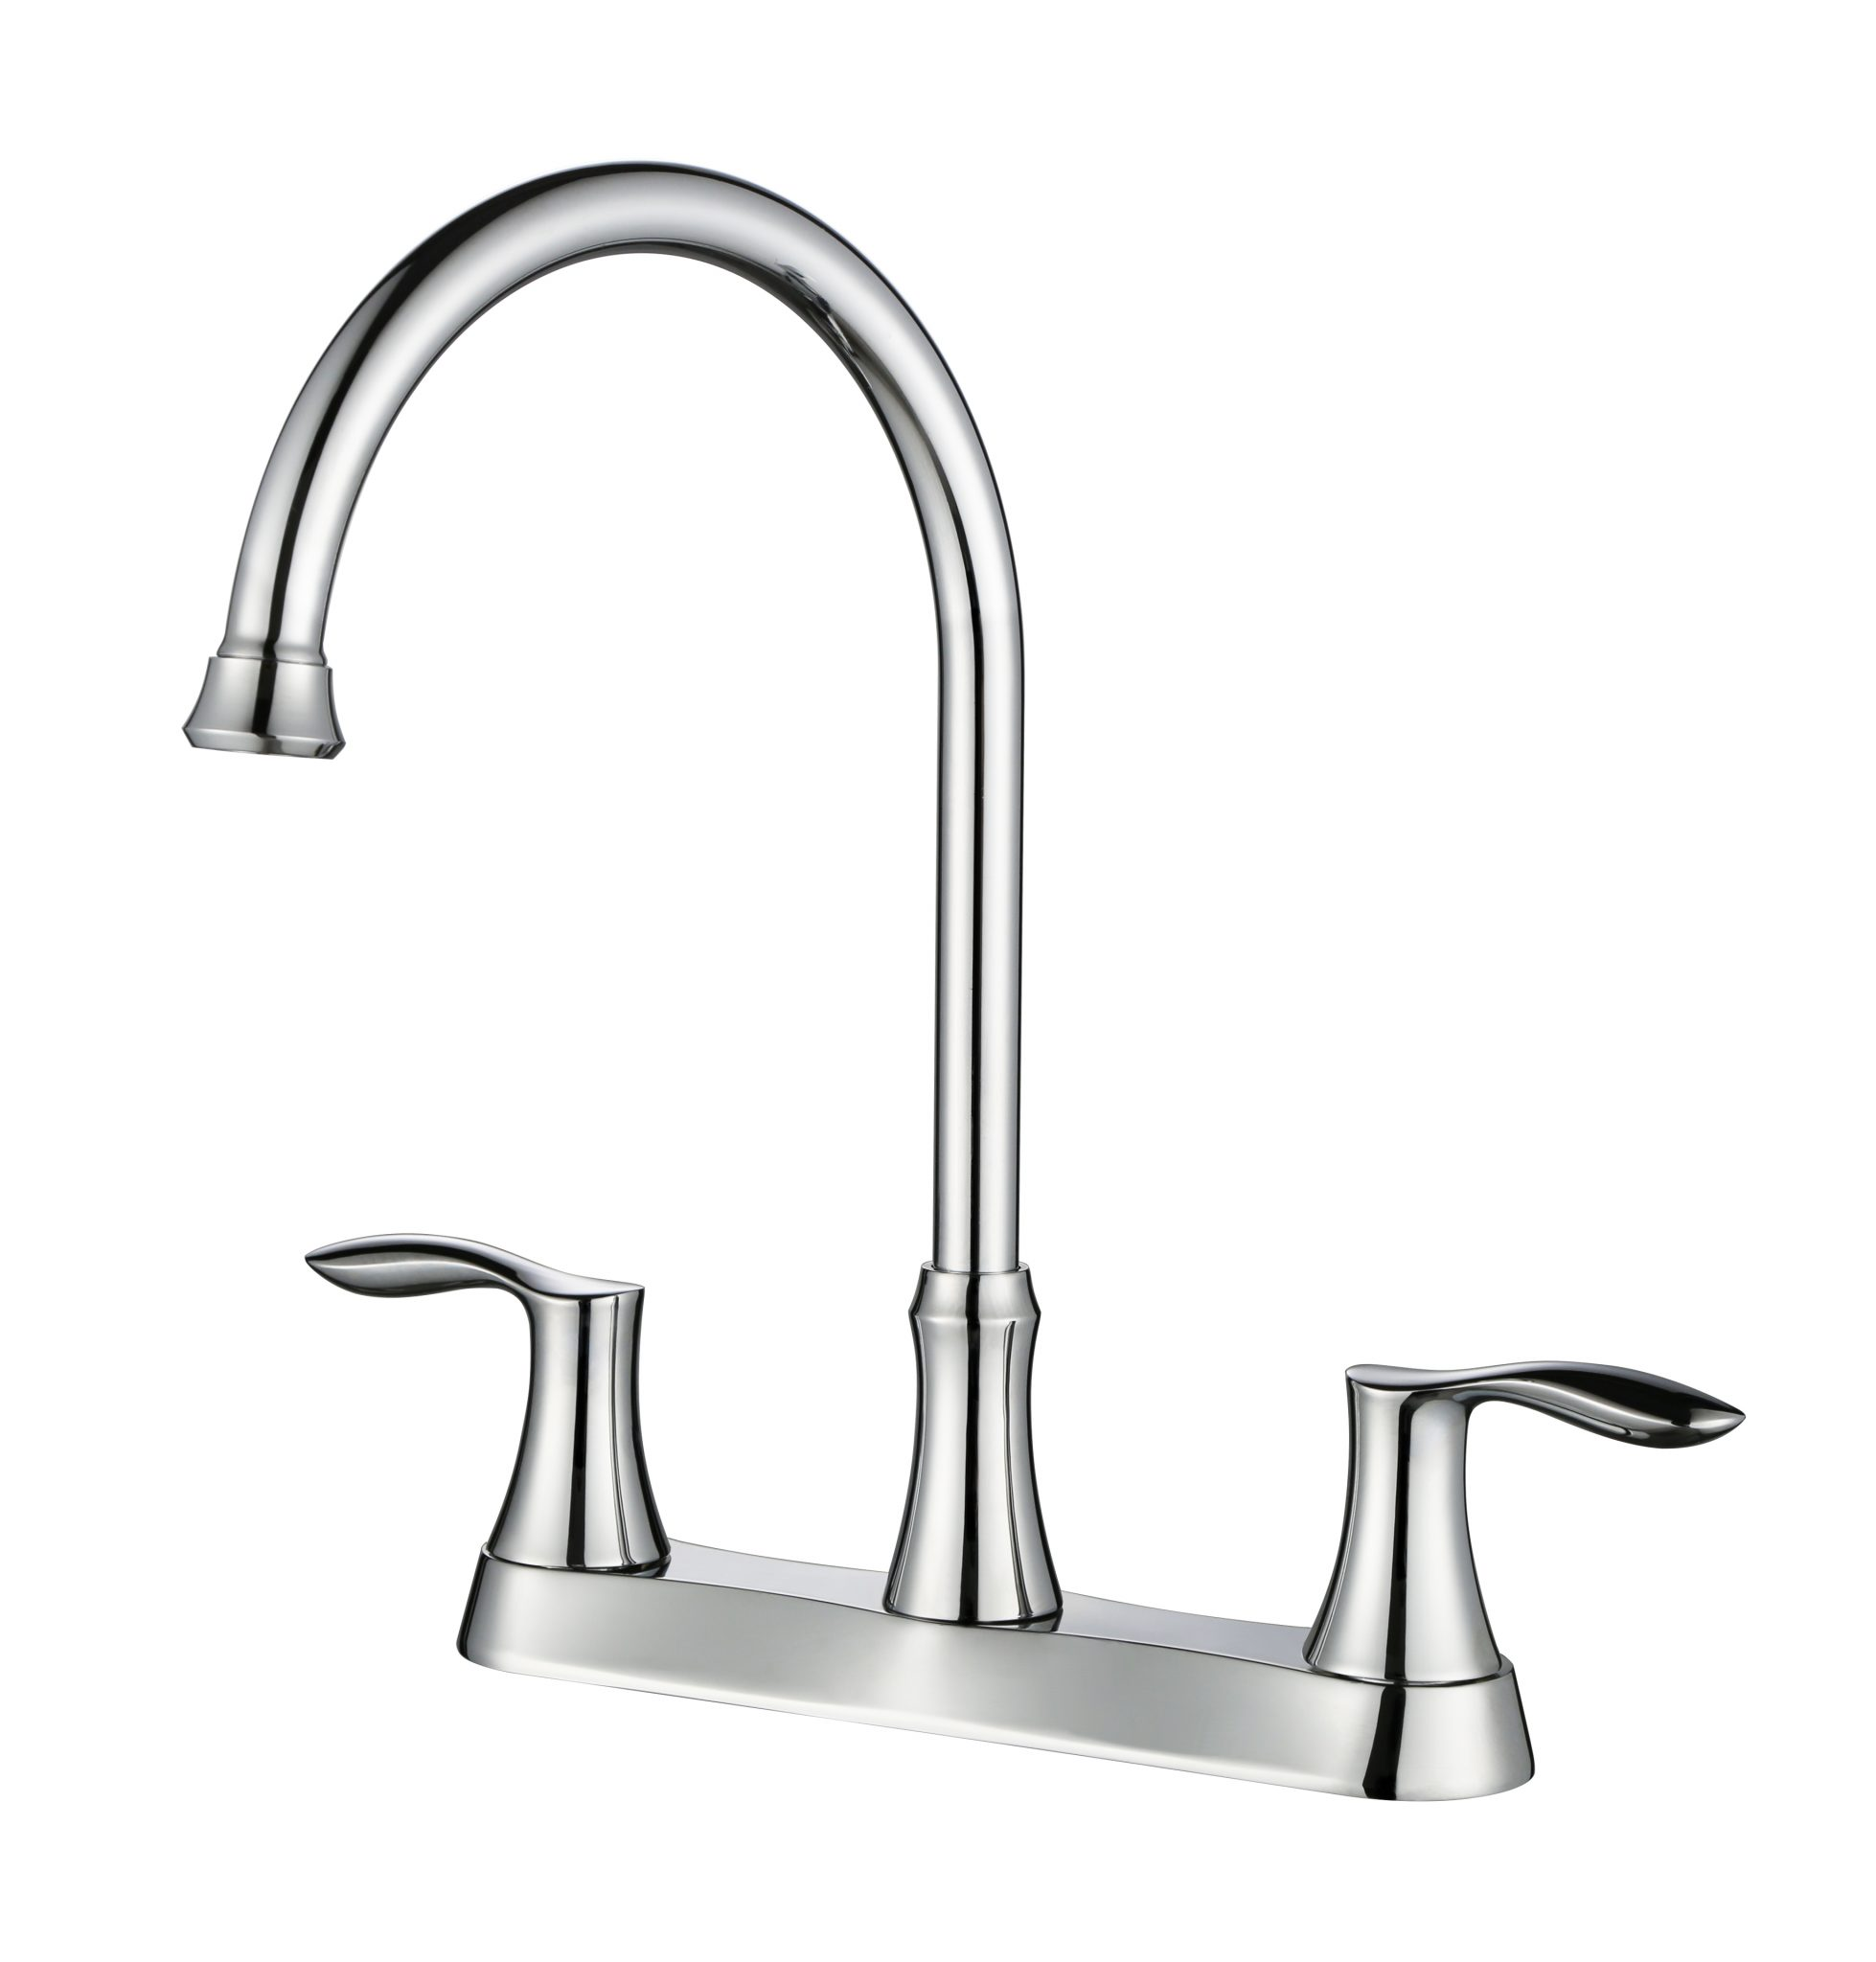 8u2033Centerset Two Handle Kitchen Faucet  KSK8238C